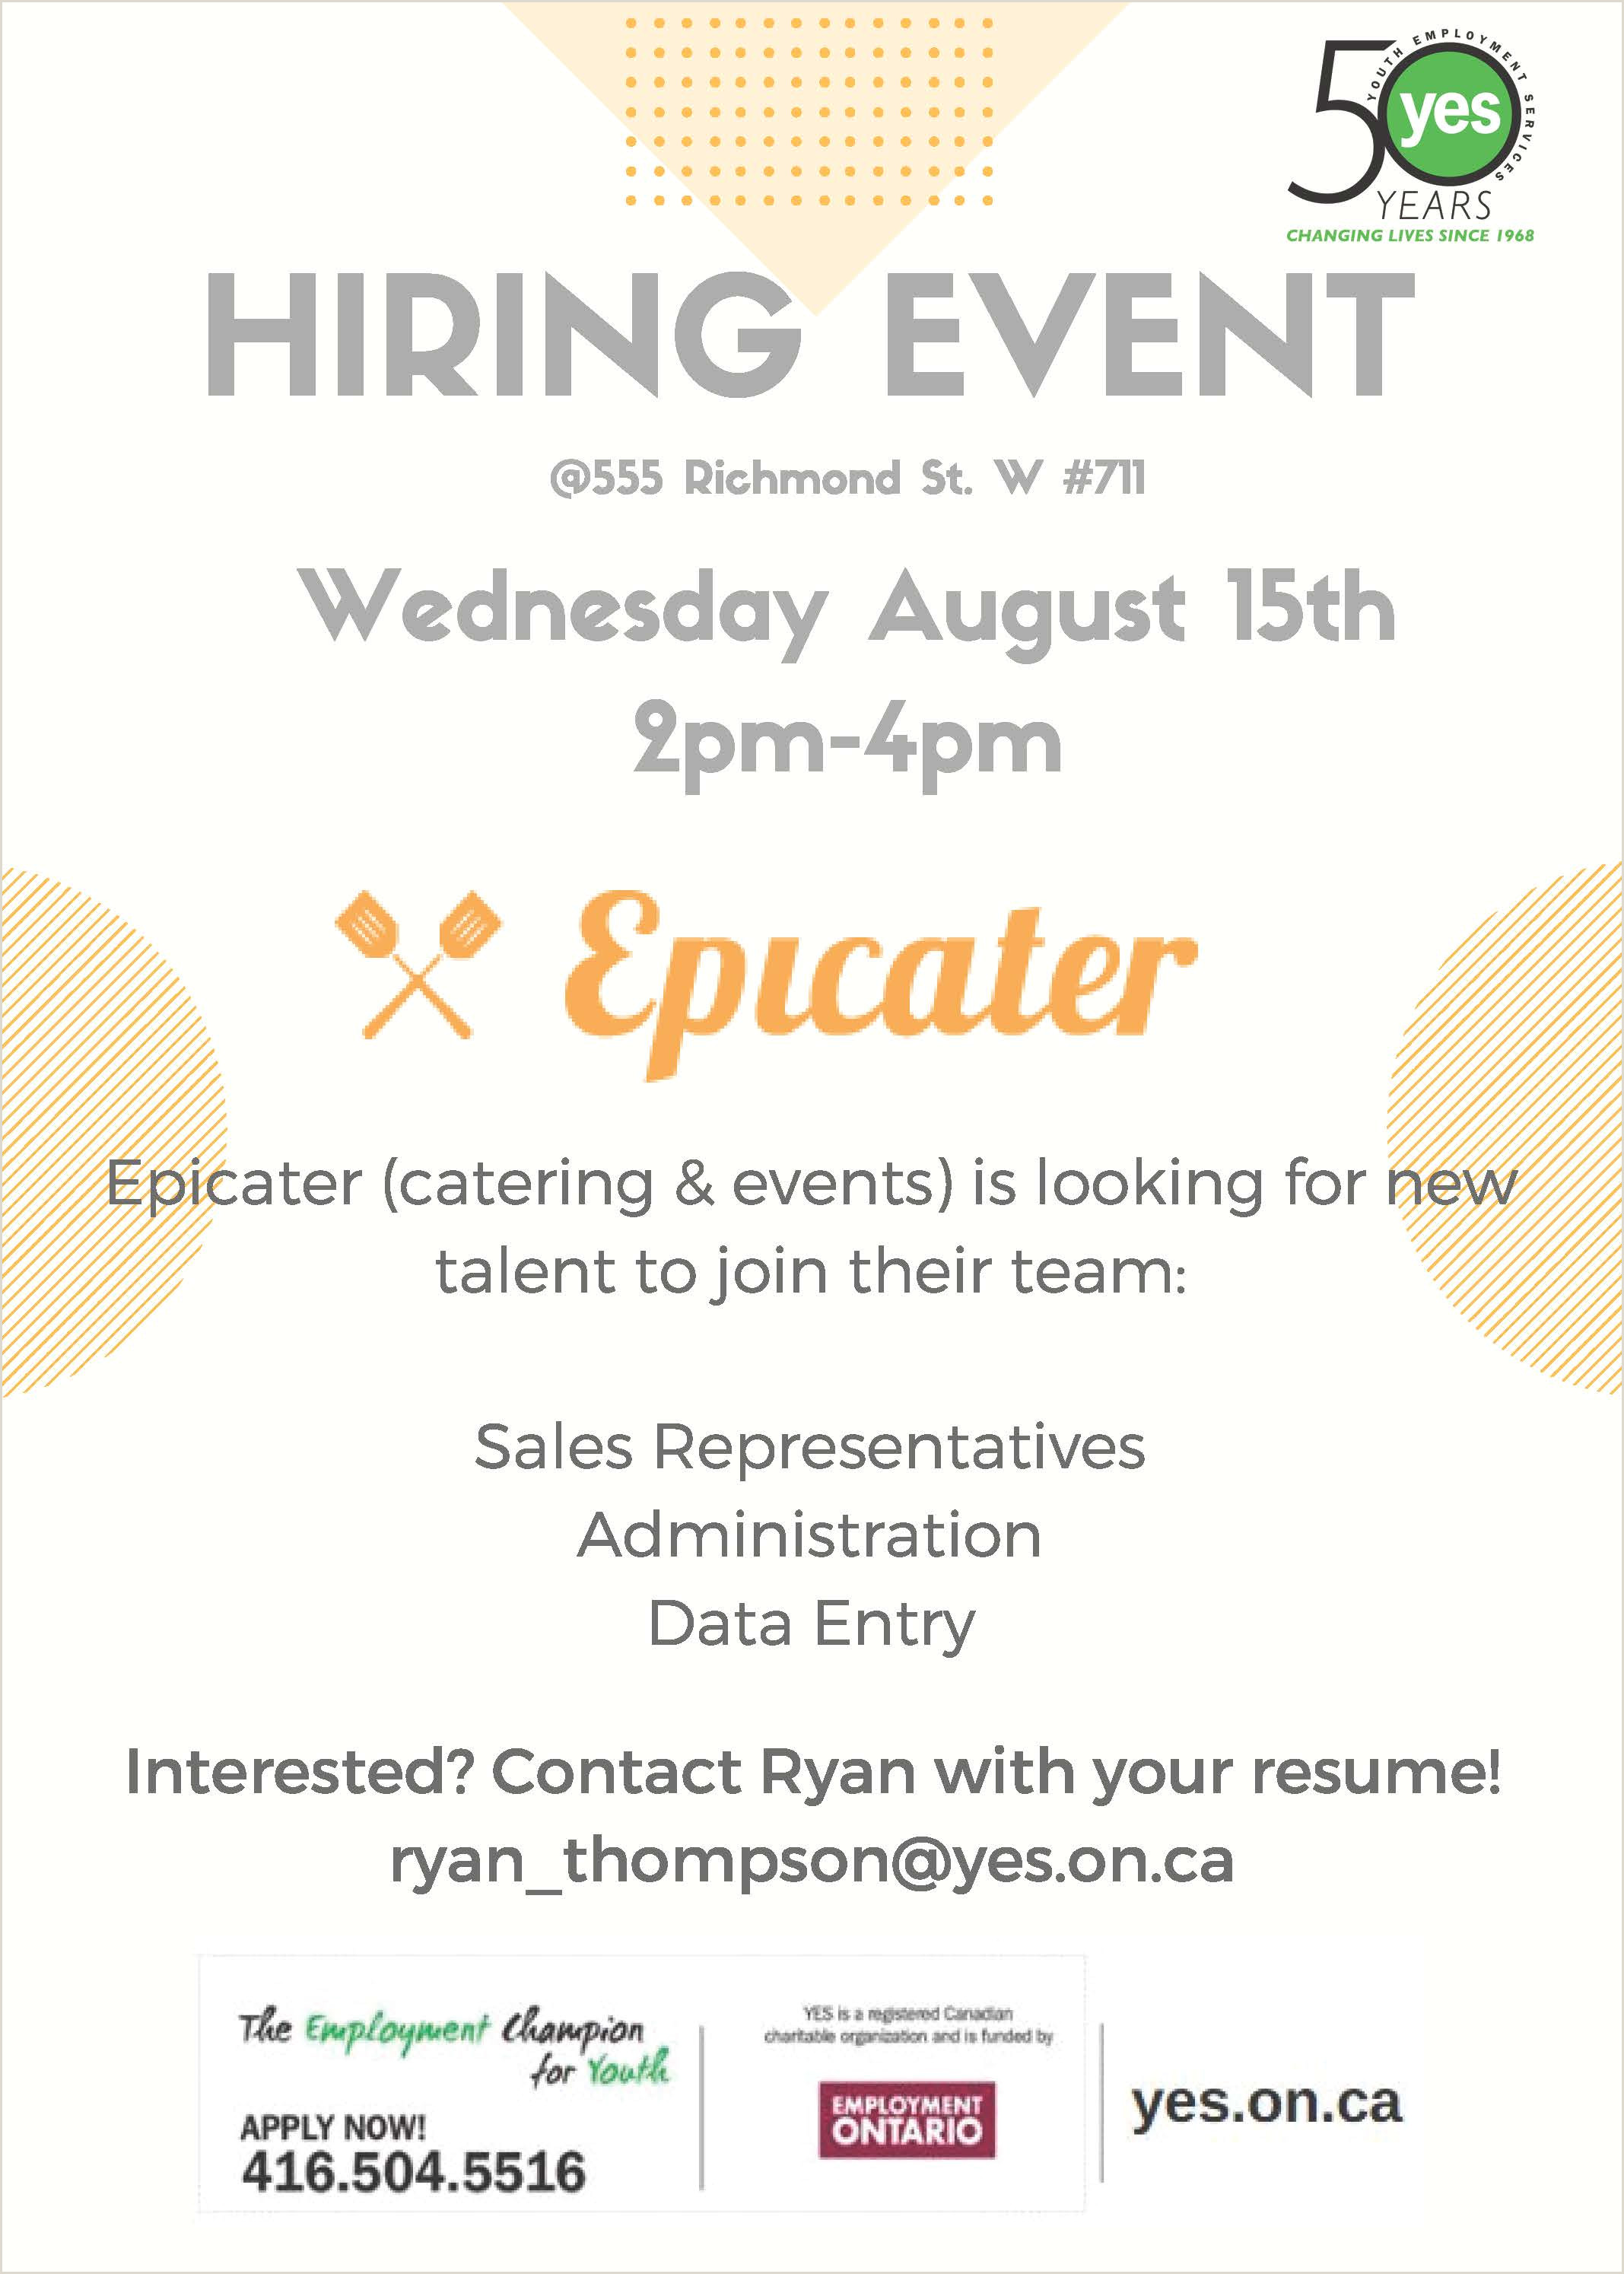 Catering Job Description for Resume Epicater Hiring event Wednesday August 15th